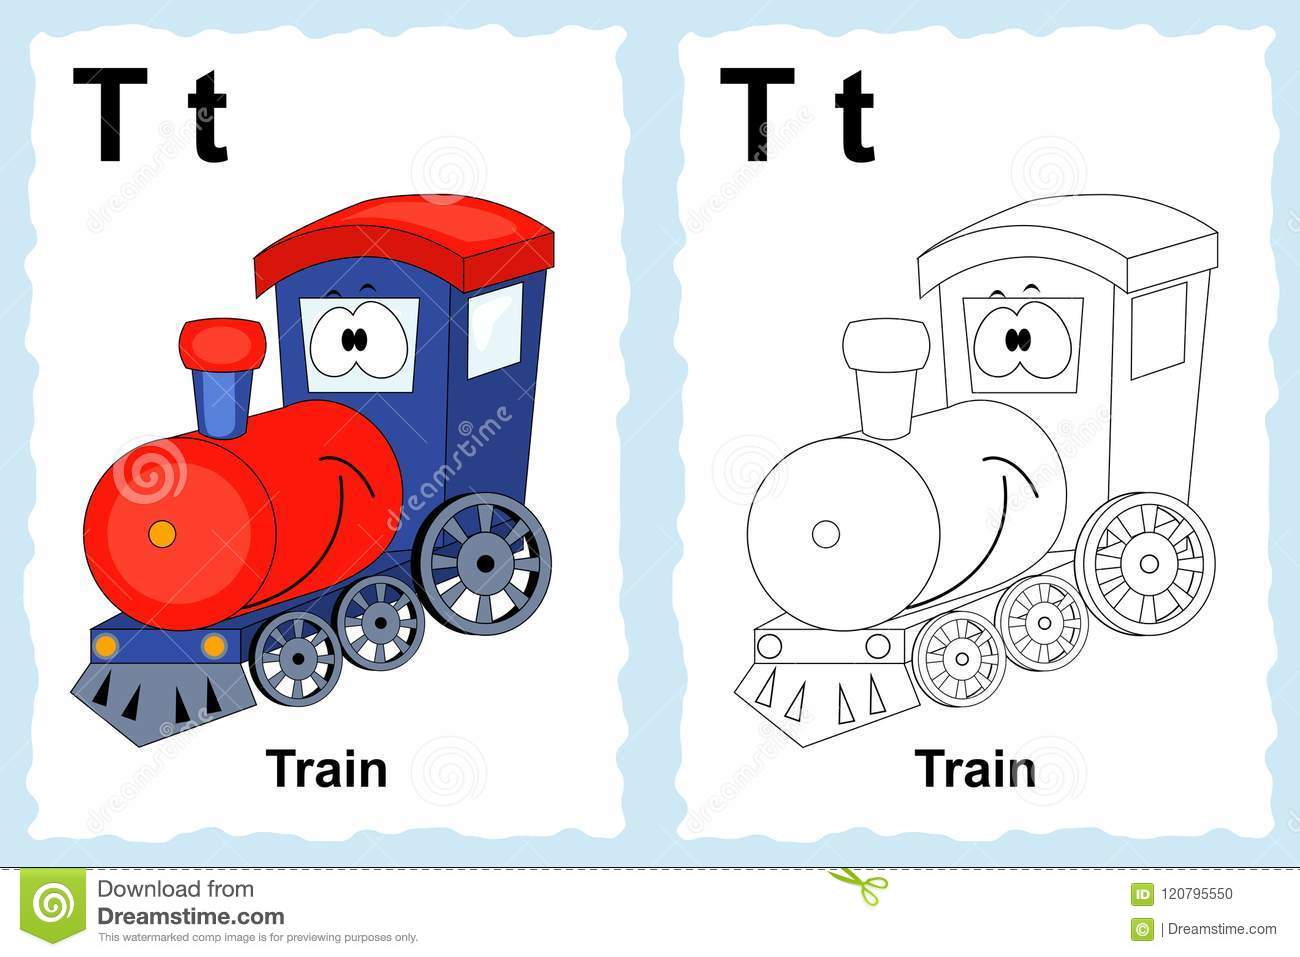 Alphabet coloring book page with outline clip art to color. Letter T. Train. Vector vehicles.